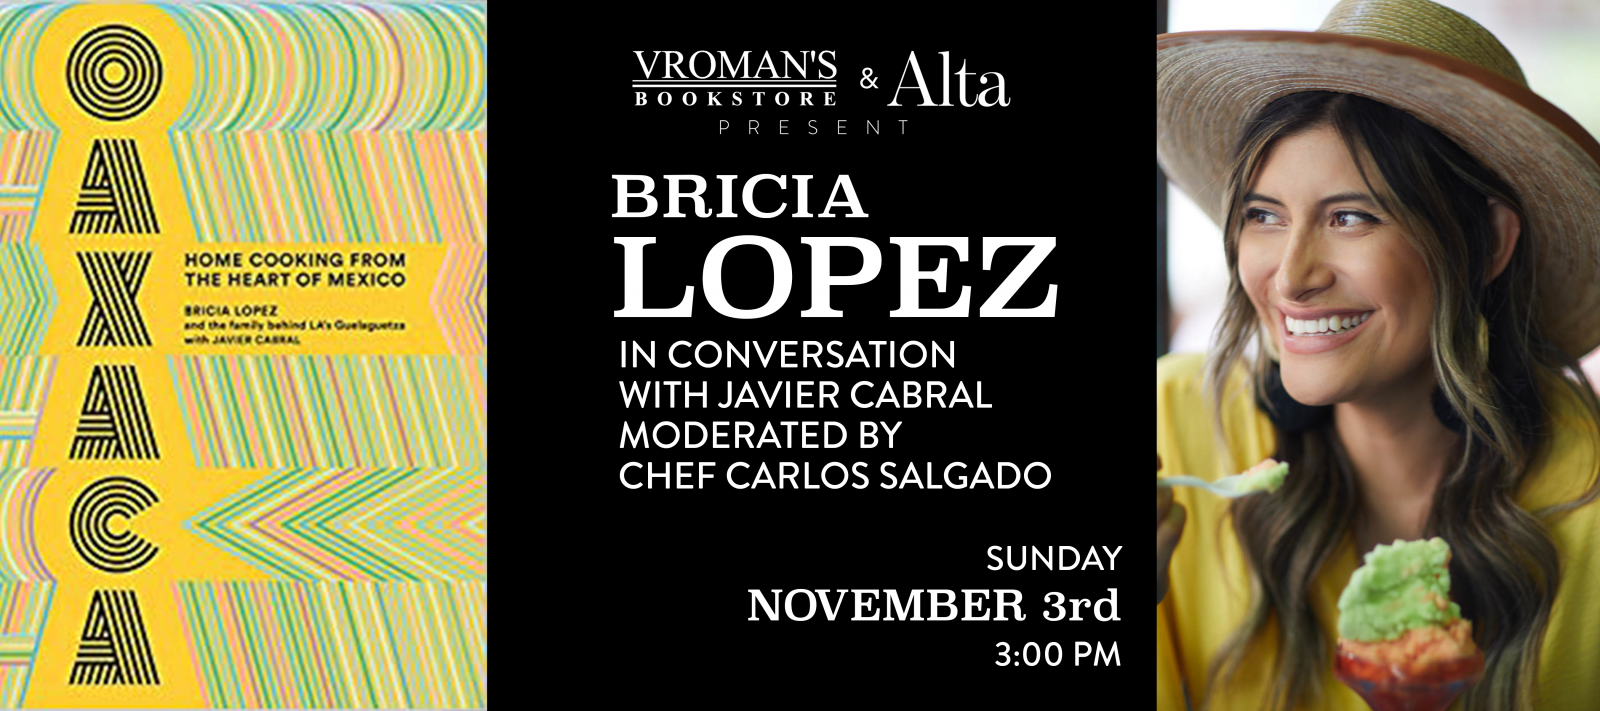 books signing with Bricia Lopez Sunday November 3 at 3pm